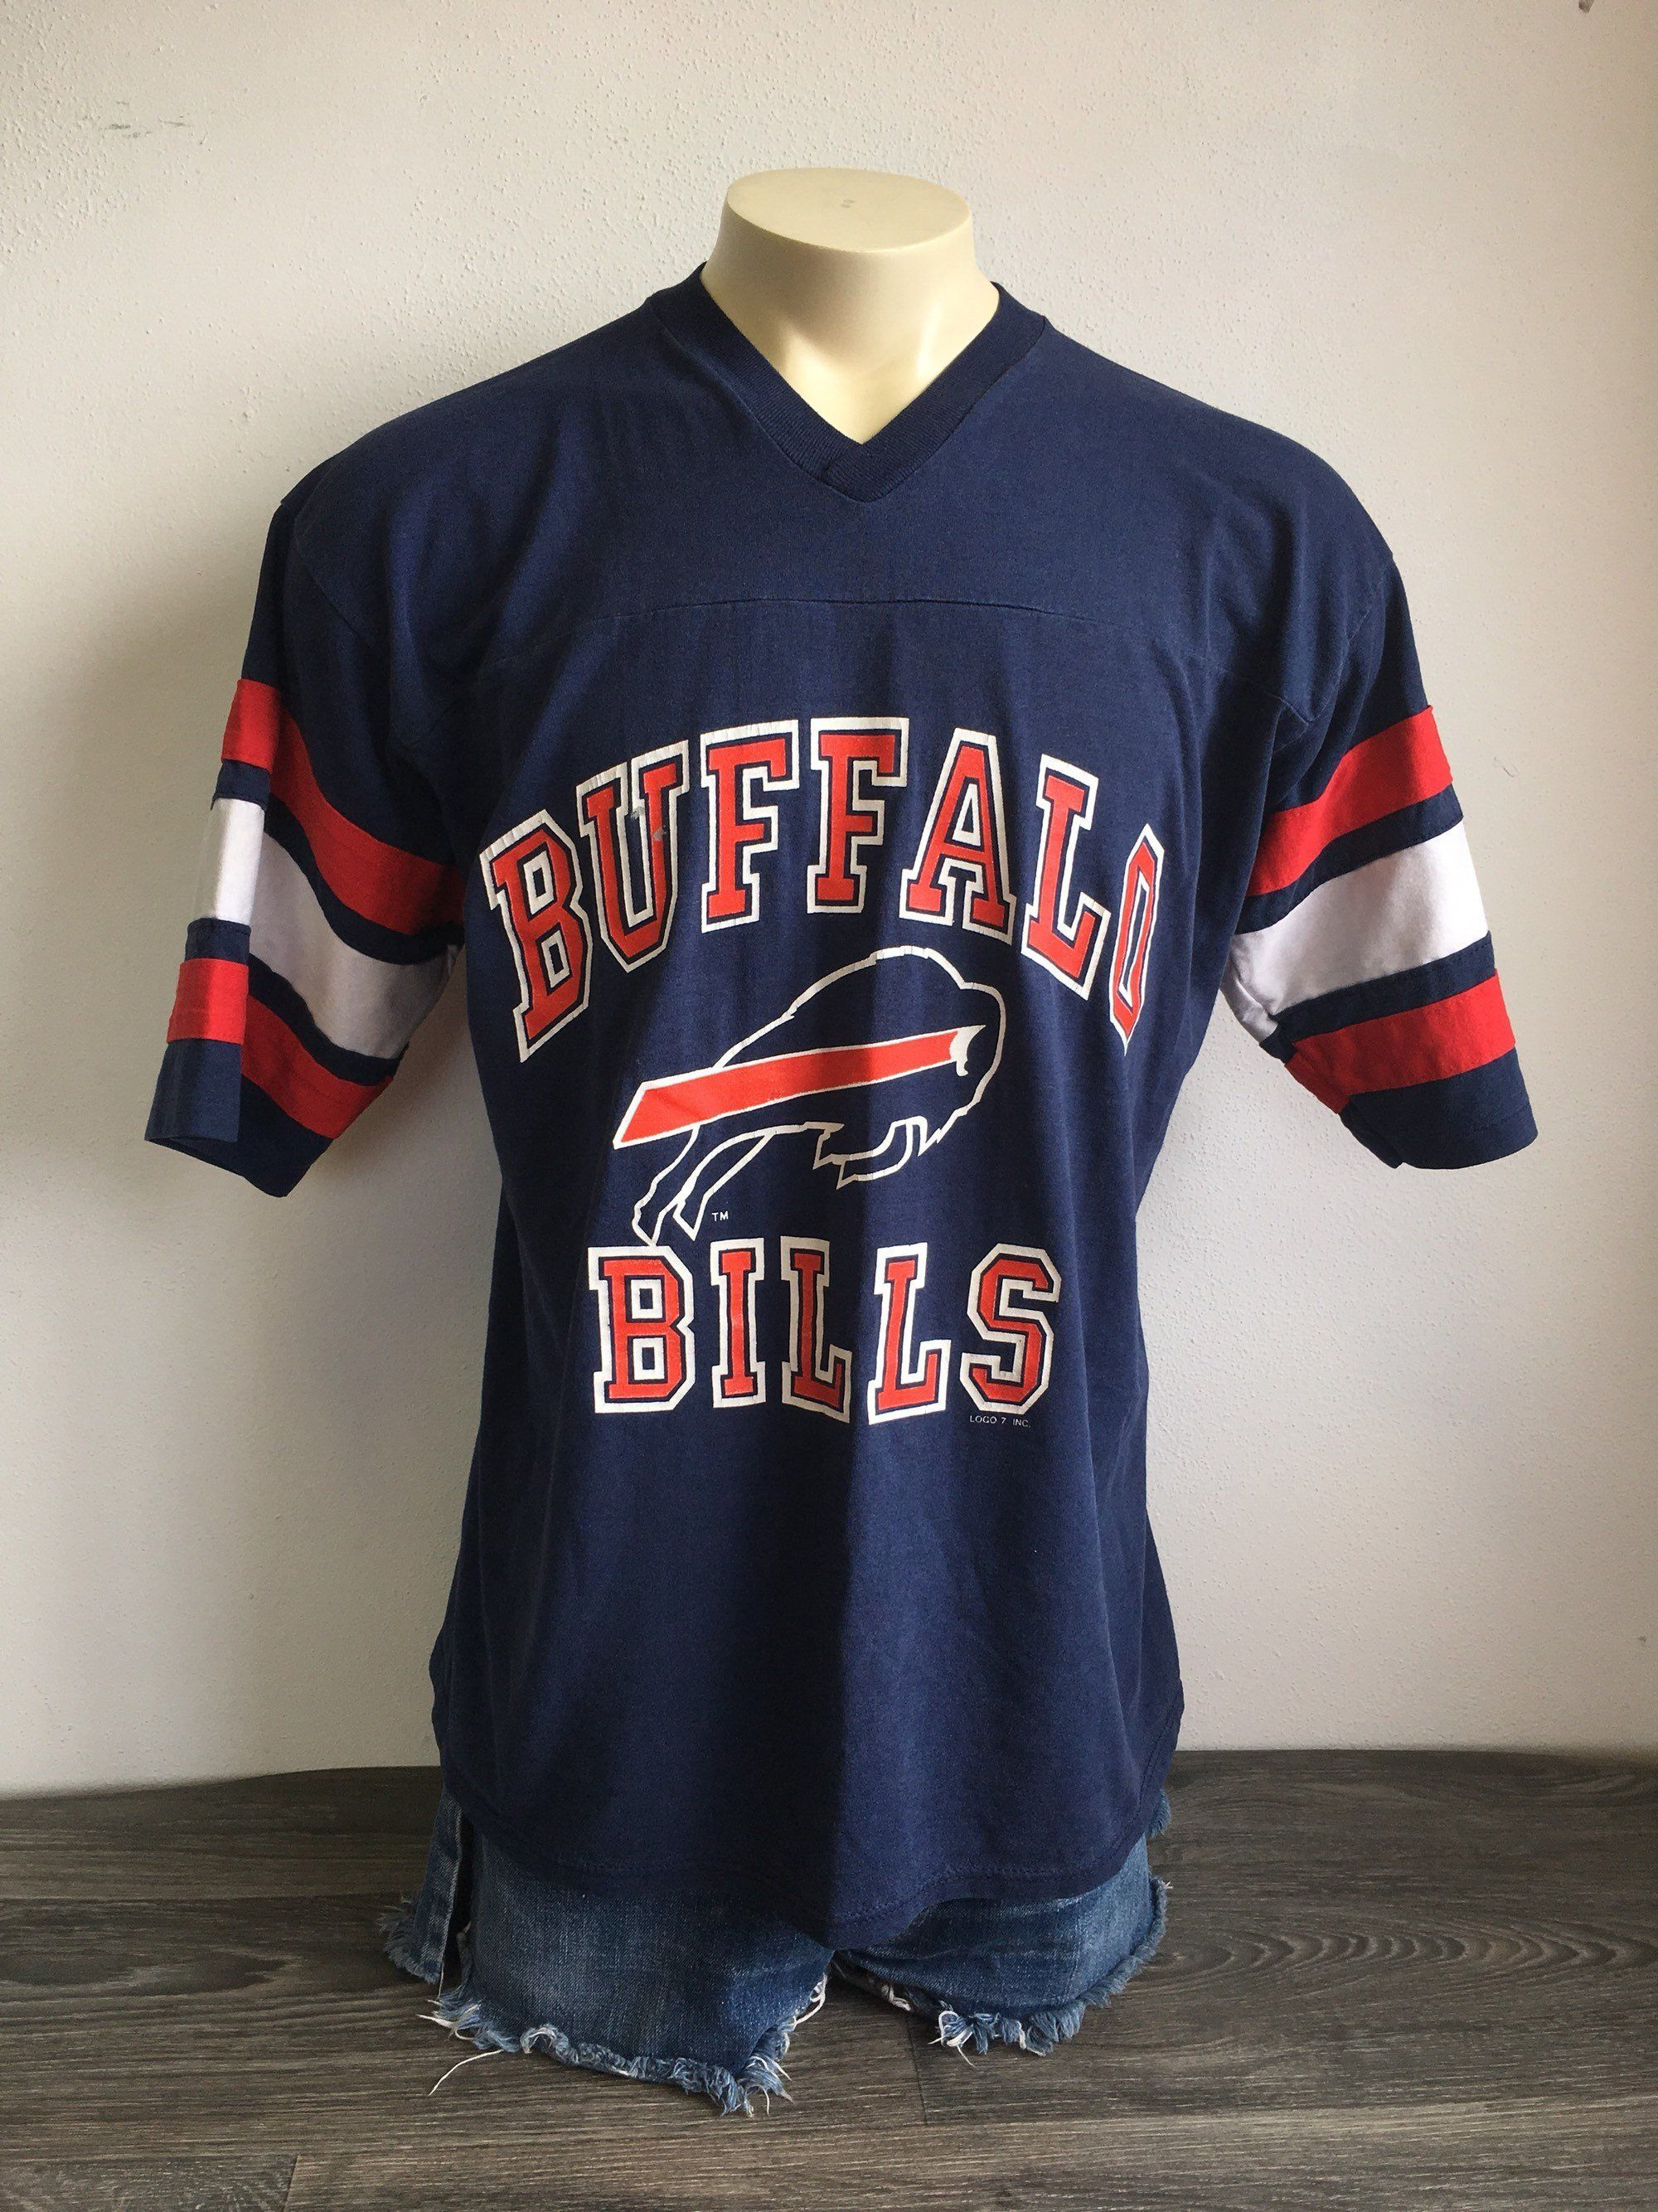 Vintage BUFFALO BILLS Jersey Tshirt 80 s Football NFL Shirt Logo 7 UsA Made  X-Large Excellent! by sweetVTGtshirt on Etsy b0548347c